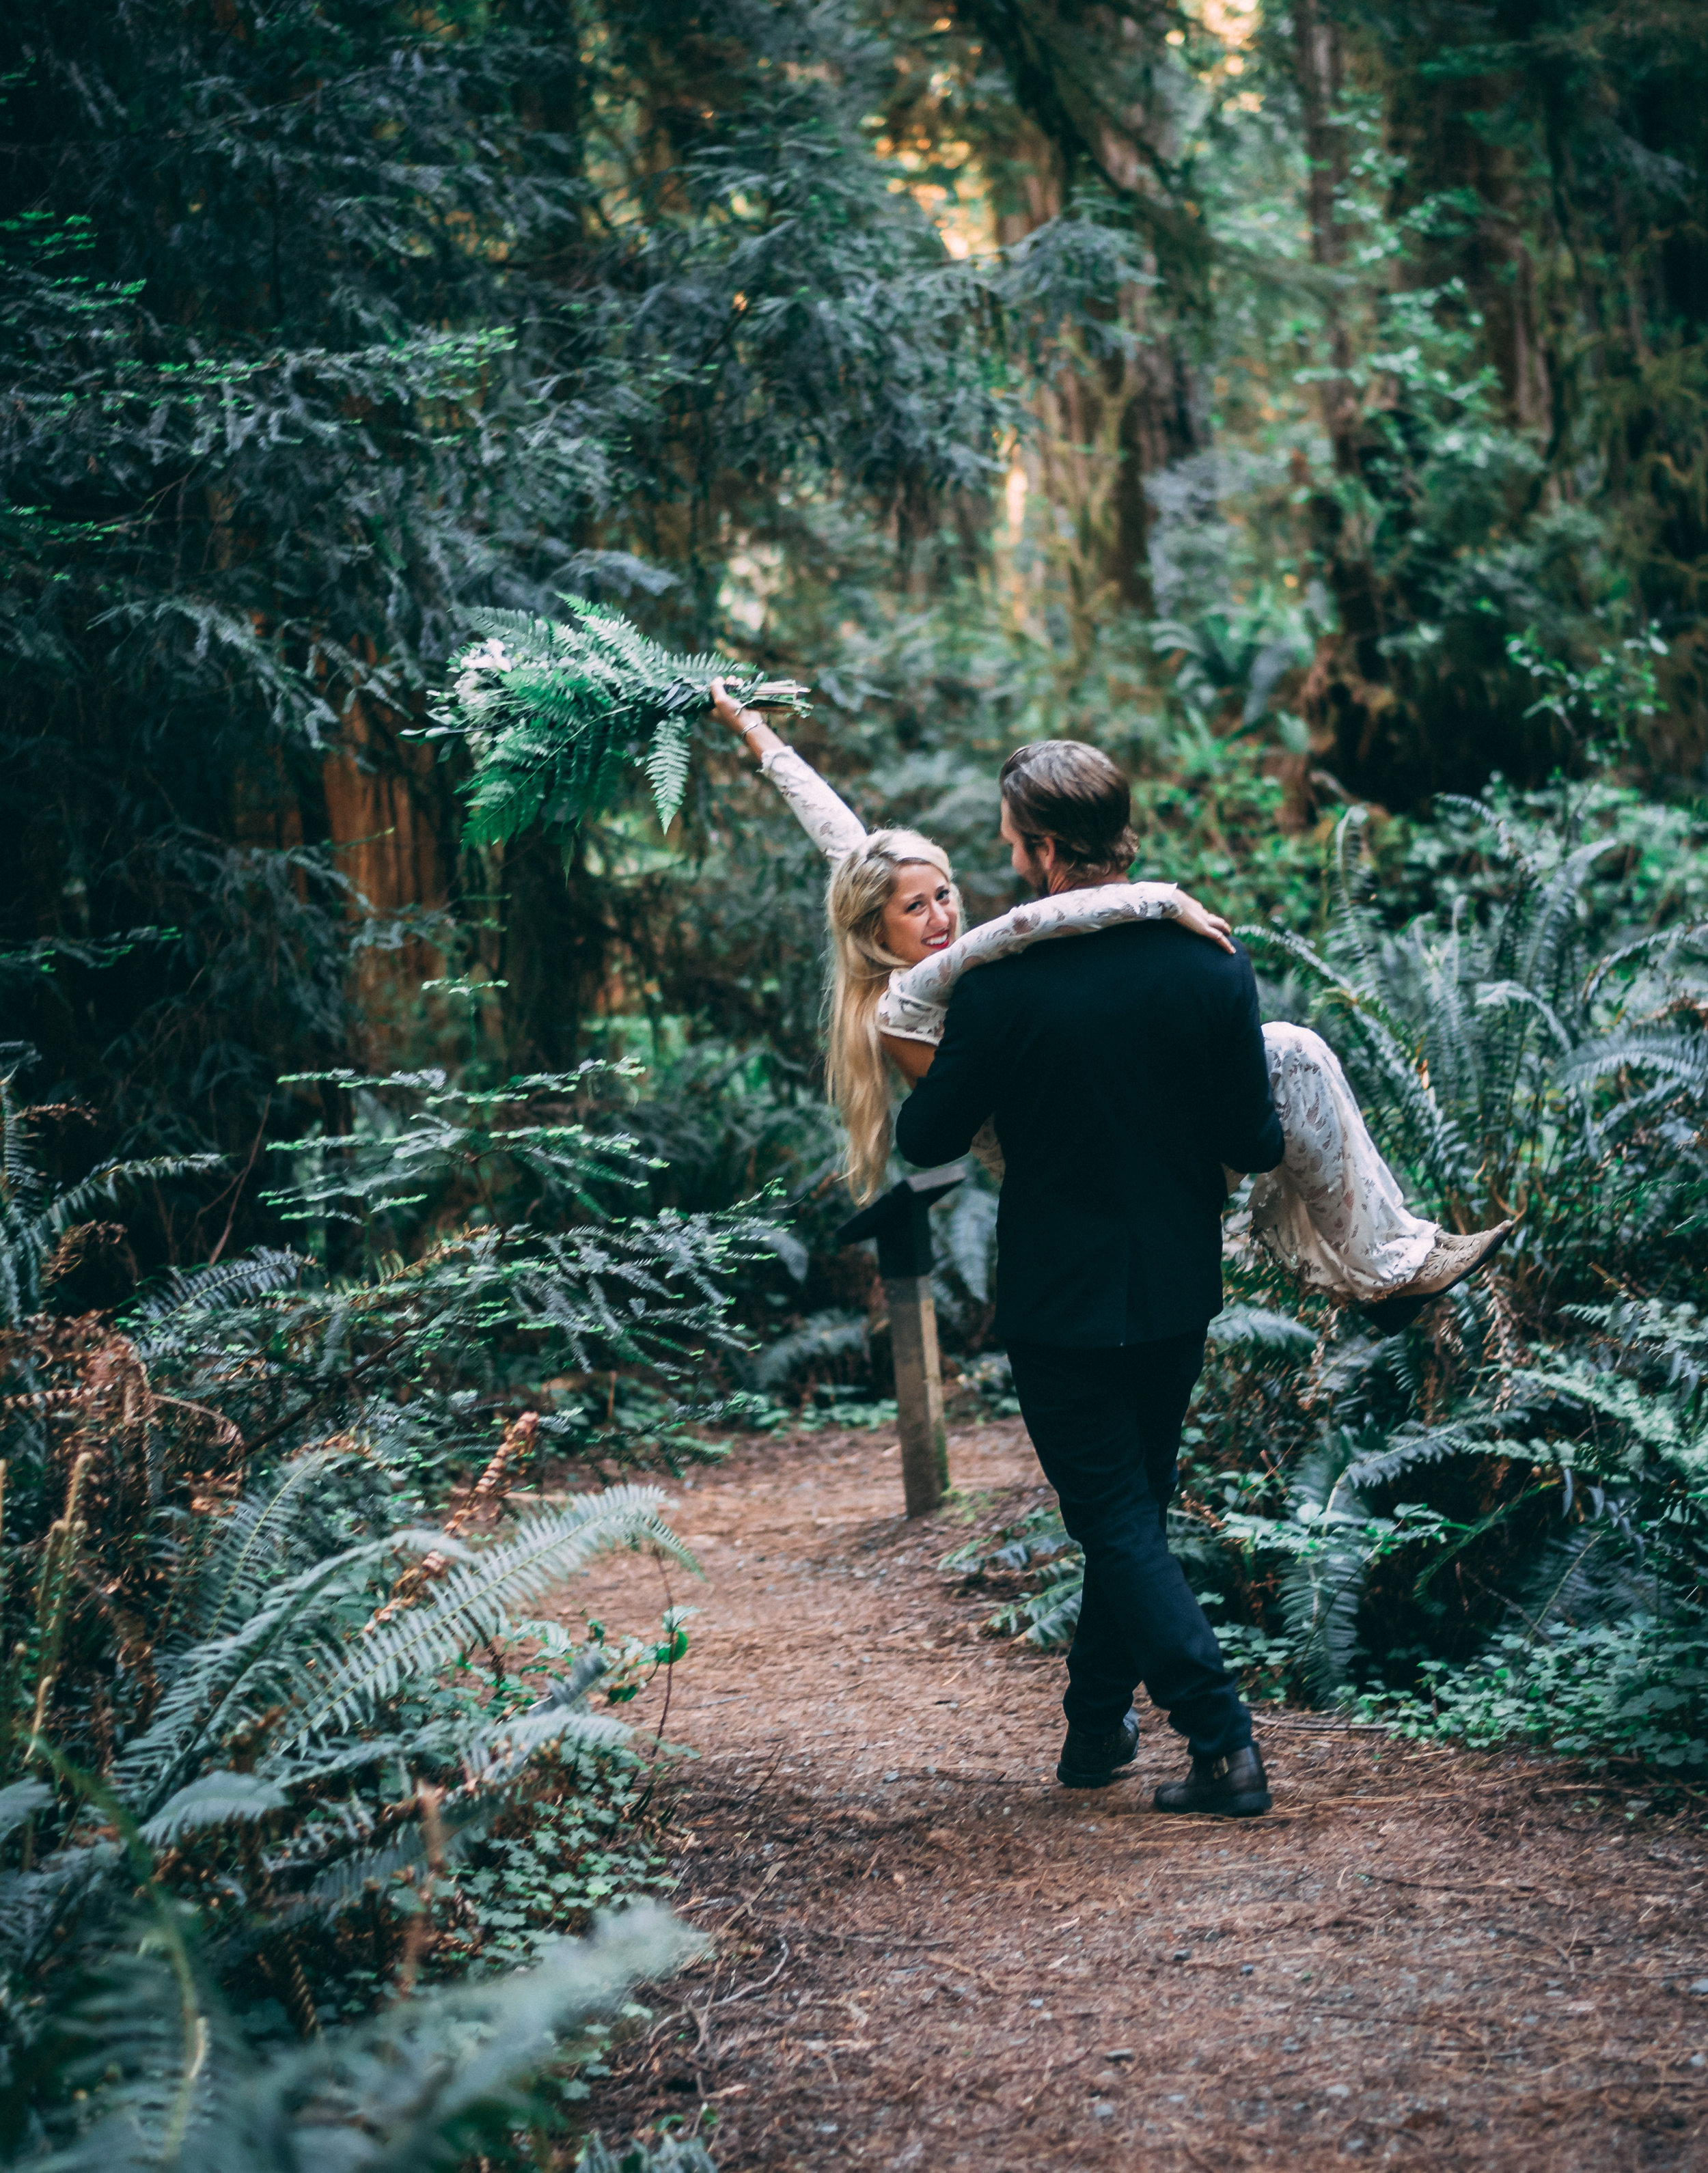 Engage - Starting at $2,600+ photography with Justin+ up to 6 hrs of wedding coverage ($300/hr extra)+ 2 hr engagement session ($300 Value)*Your complimentary engagement session will include an adventure if you are willing. I usually devout a full day to clients willing to get out into a scenic spot. Usually a National Park.+ online gallery with fully edited hi-res images for proofing and making print orders directly+ personal print release and unlimited downloads+ $100 Print credit+ consultation and planning assistance with locations, styling and more.